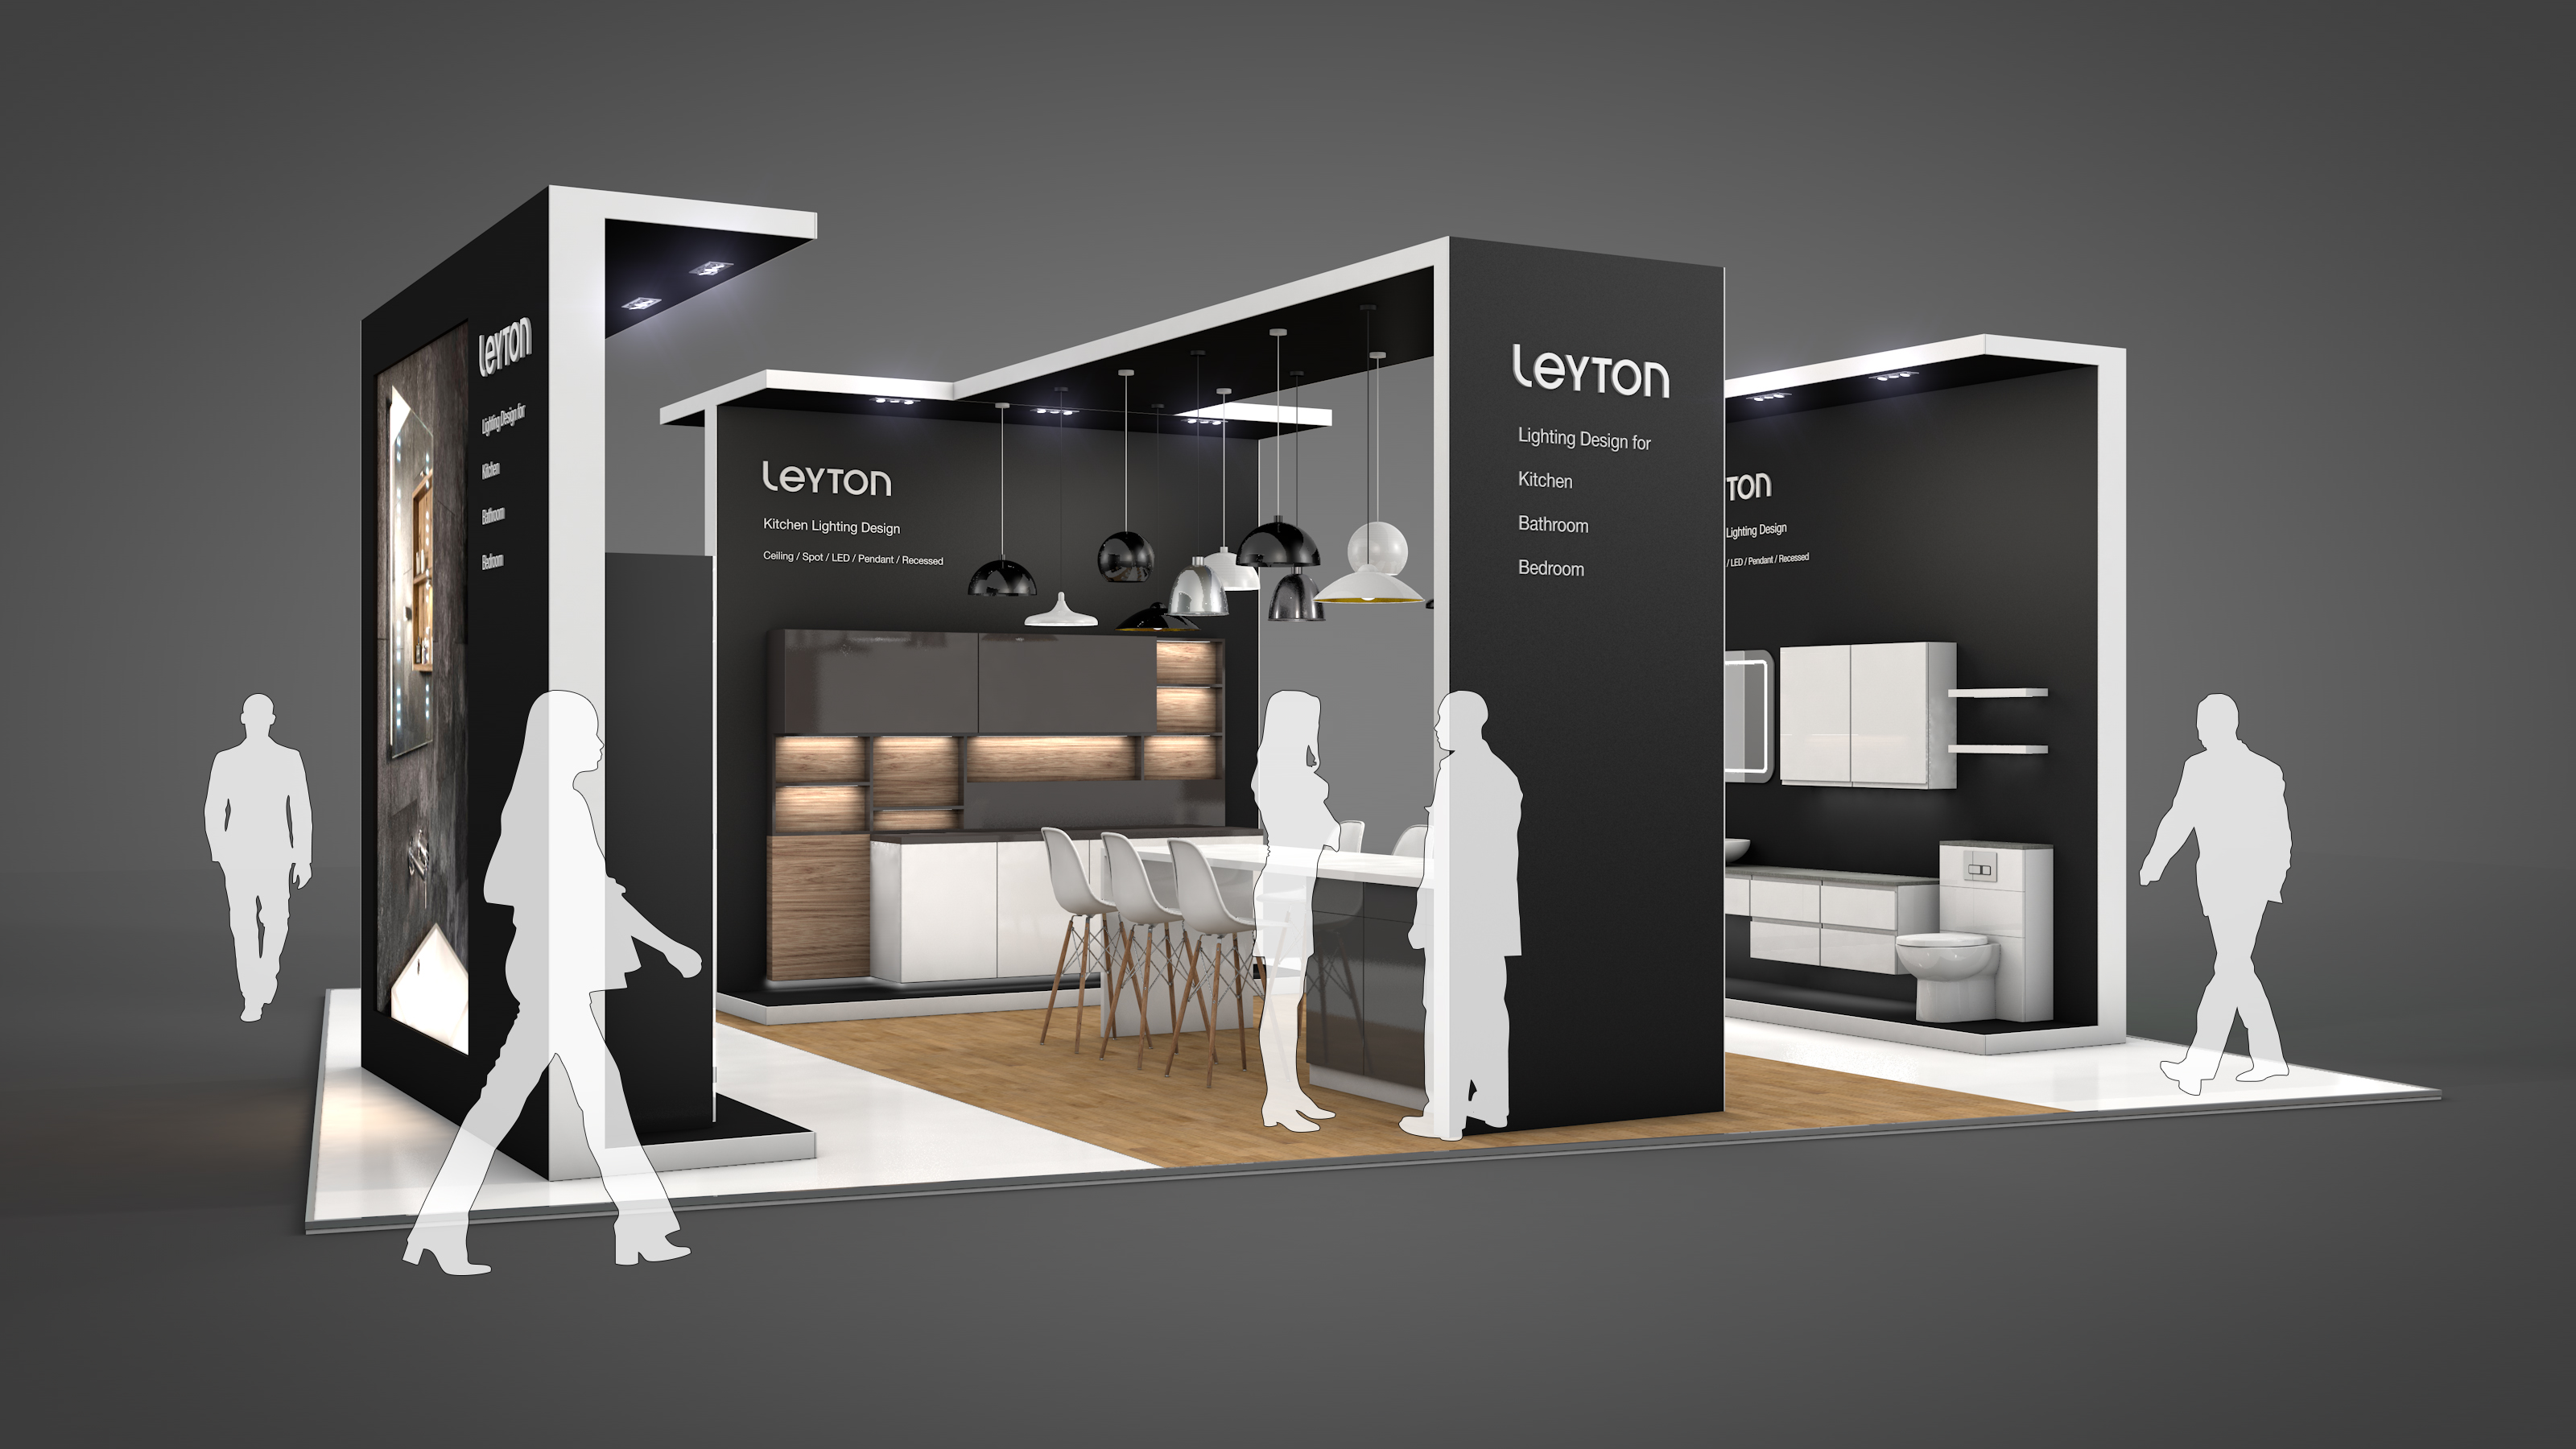 Leyton Lighting Kbb 2018 Hu3d Lighting Exhibition Design